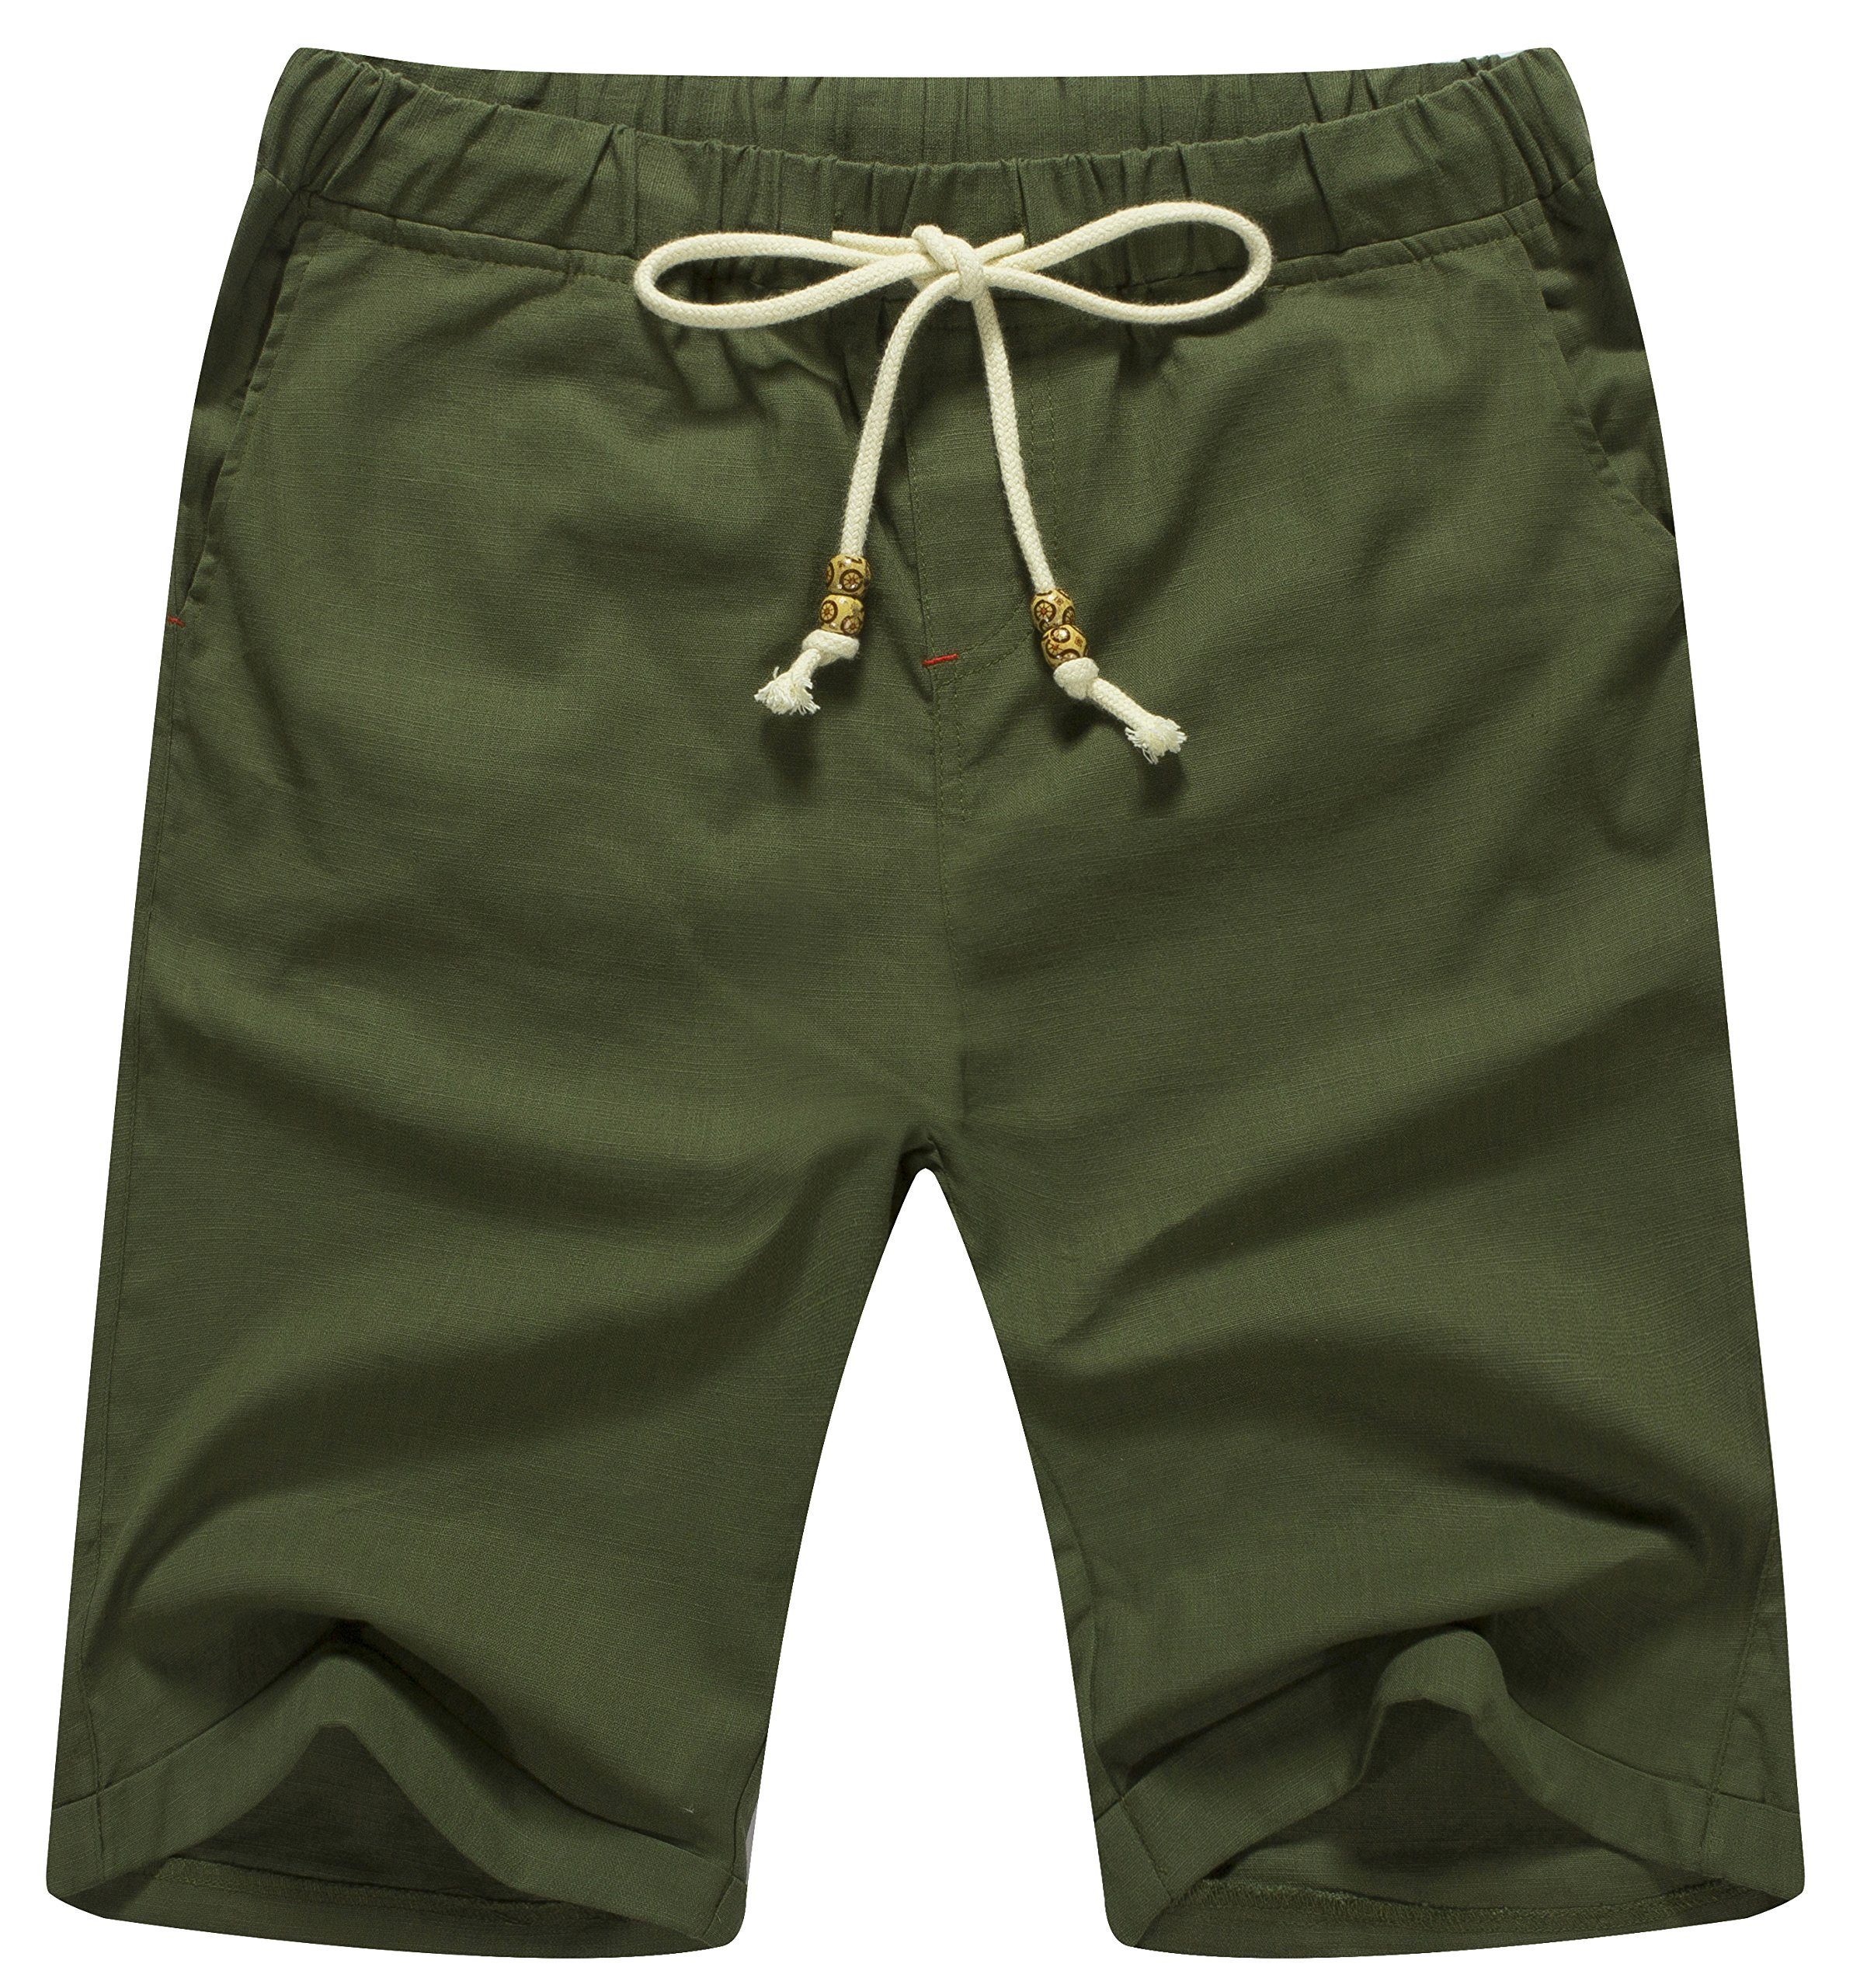 ZYFMAILY Men's Linen Casual Classic Fit Short Drawstring Summer Beach Shorts (XL, Army Green)